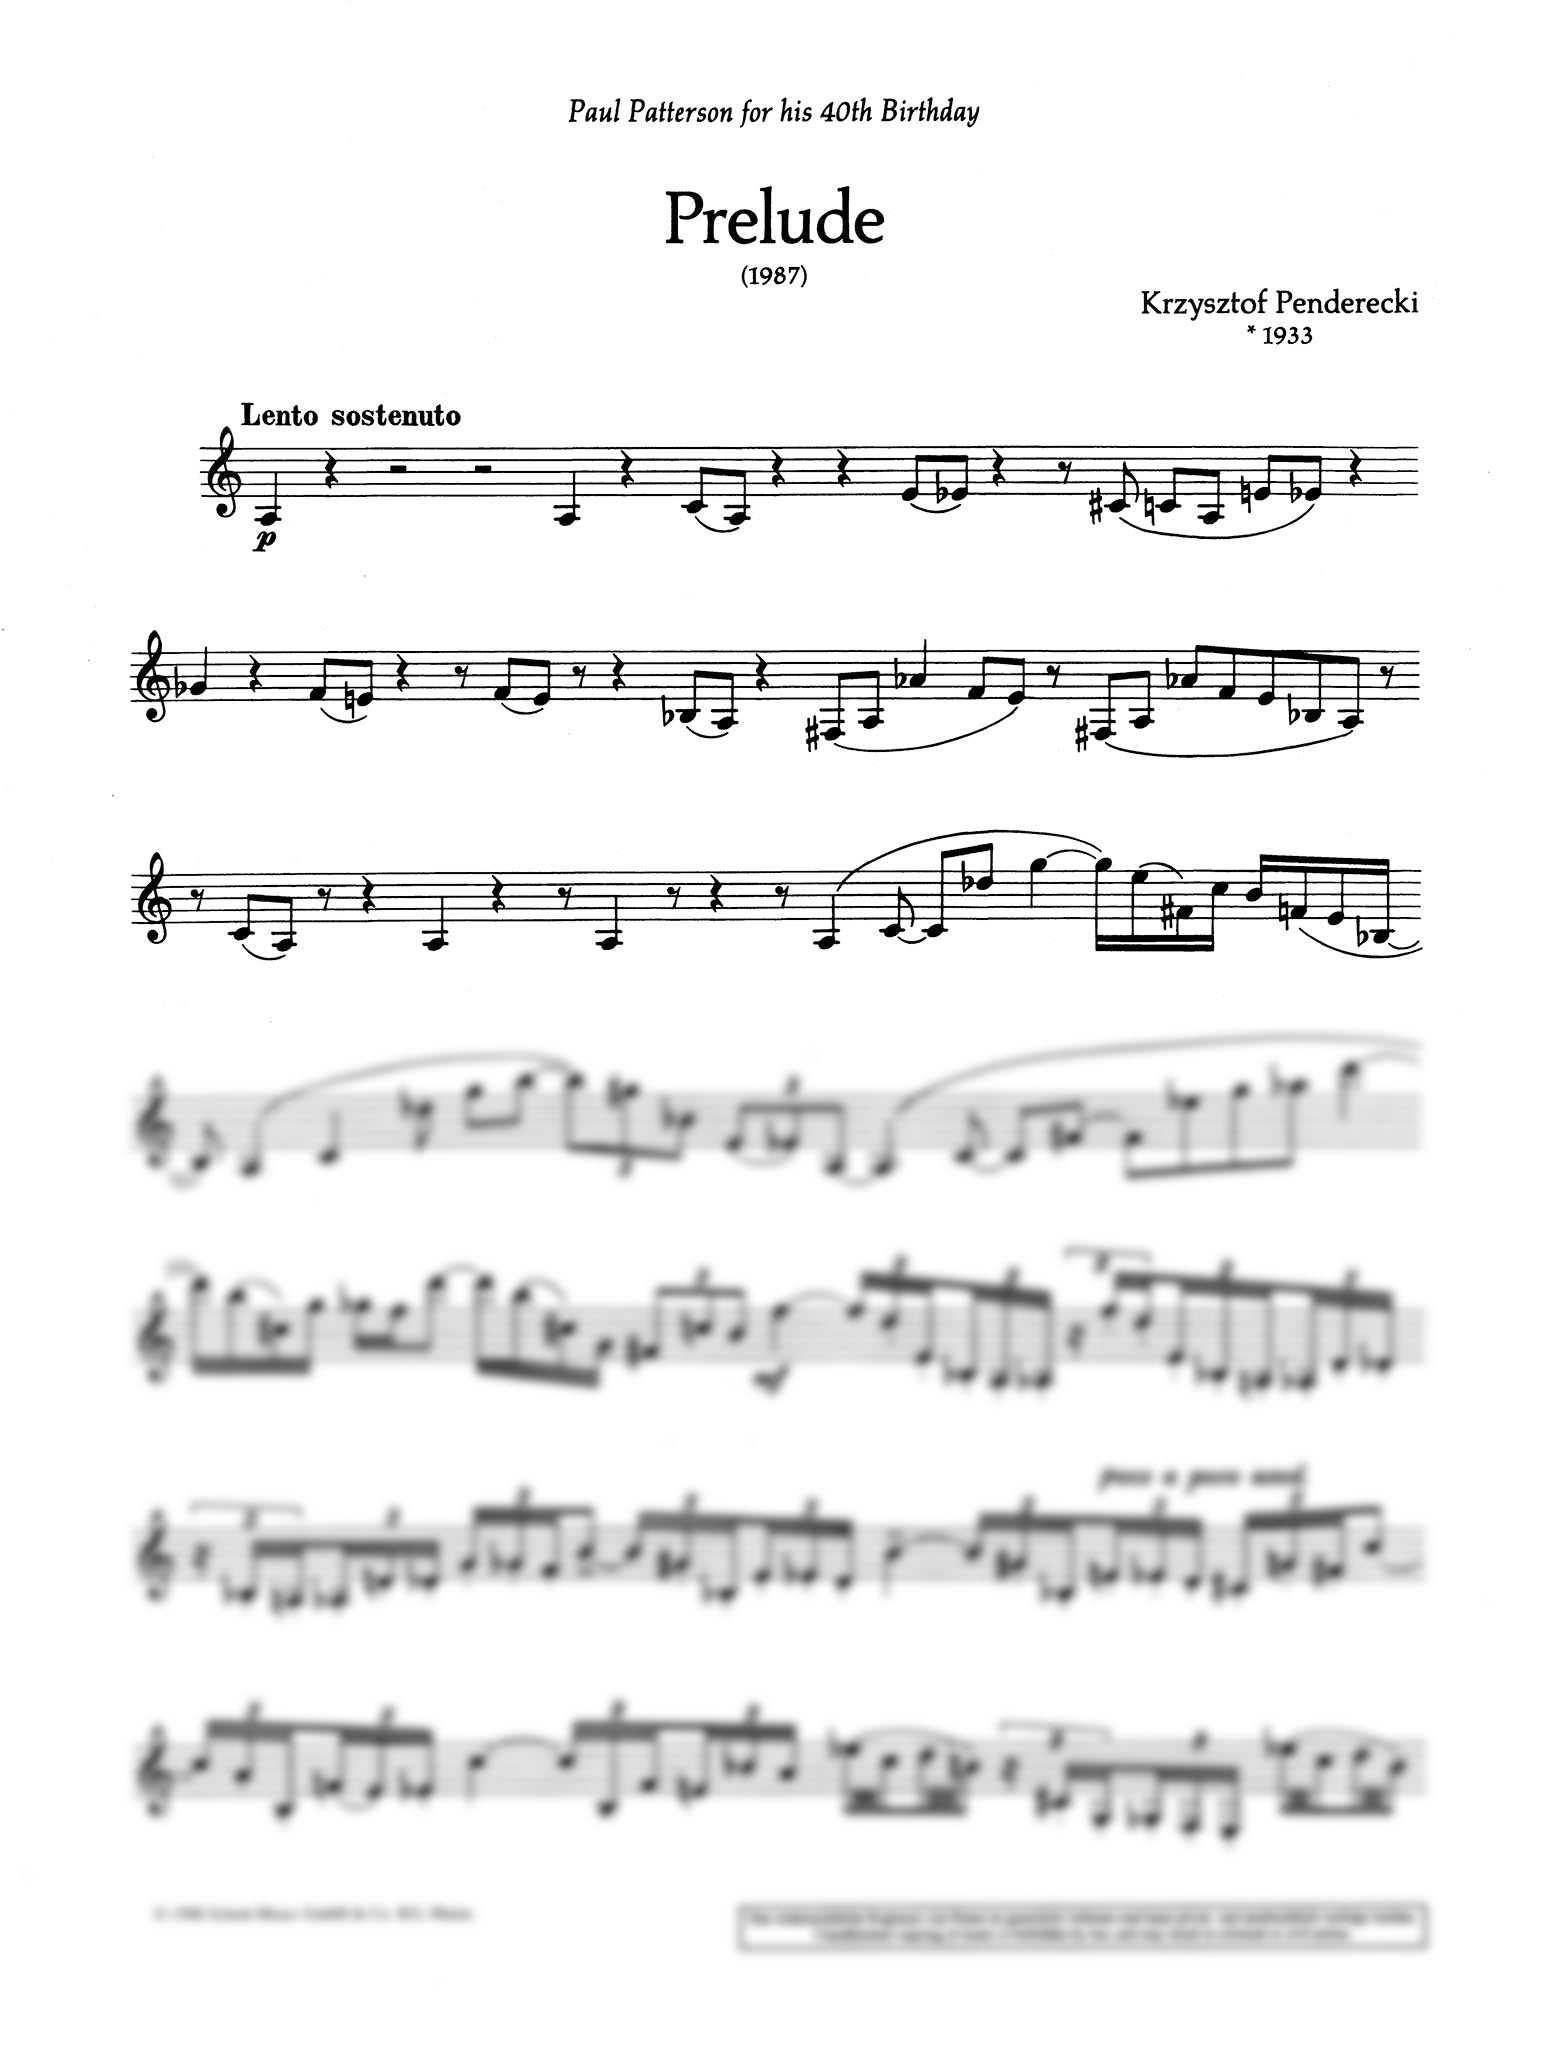 Prelude Clarinet part